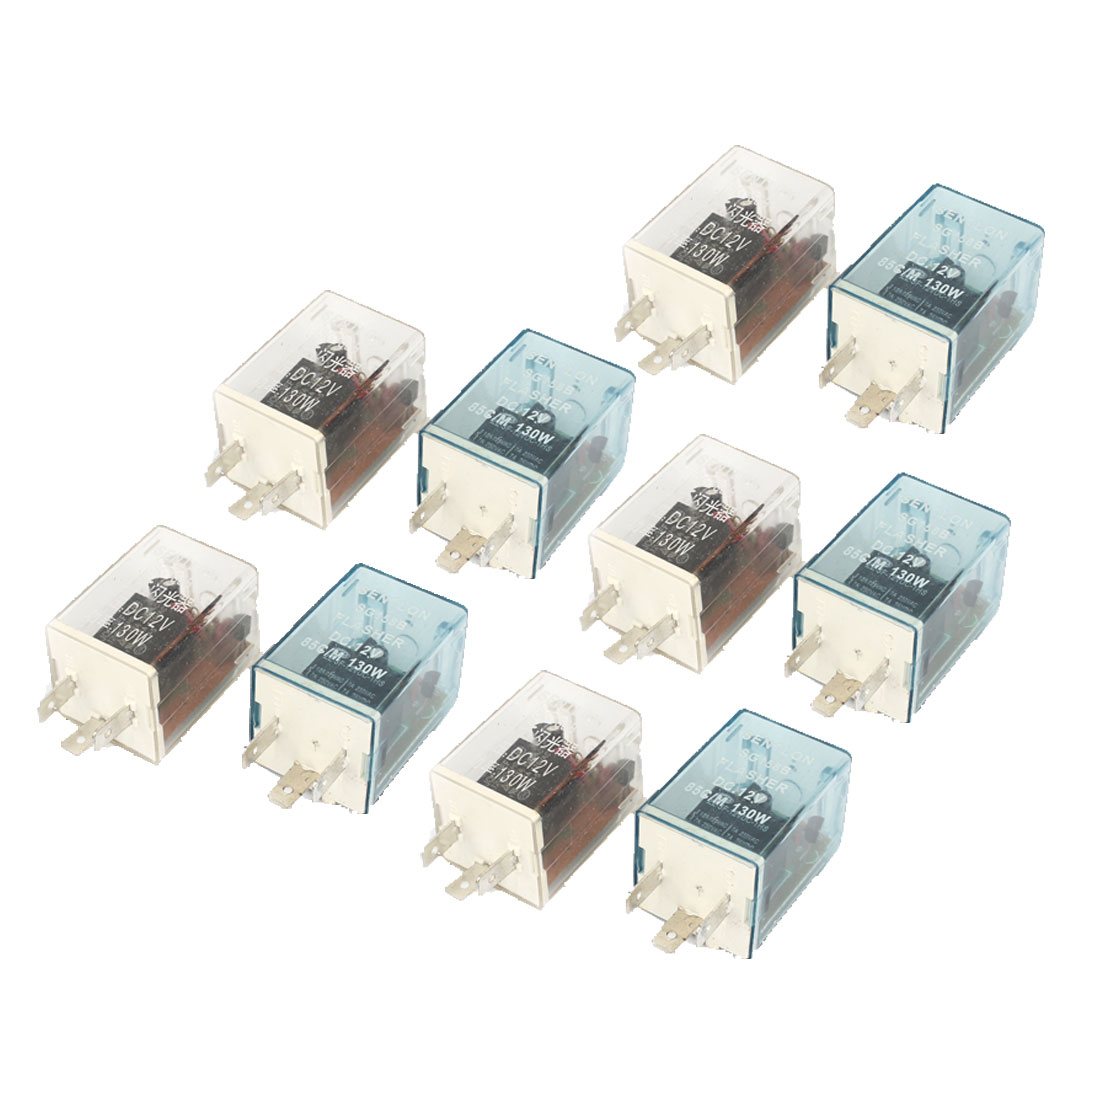 X Autohaux 10 Pcs 12v 3 Terminals Electronic Car Motorcycle Flash Terminal Flasher Relay In Switches Relays From Automobiles Motorcycles On